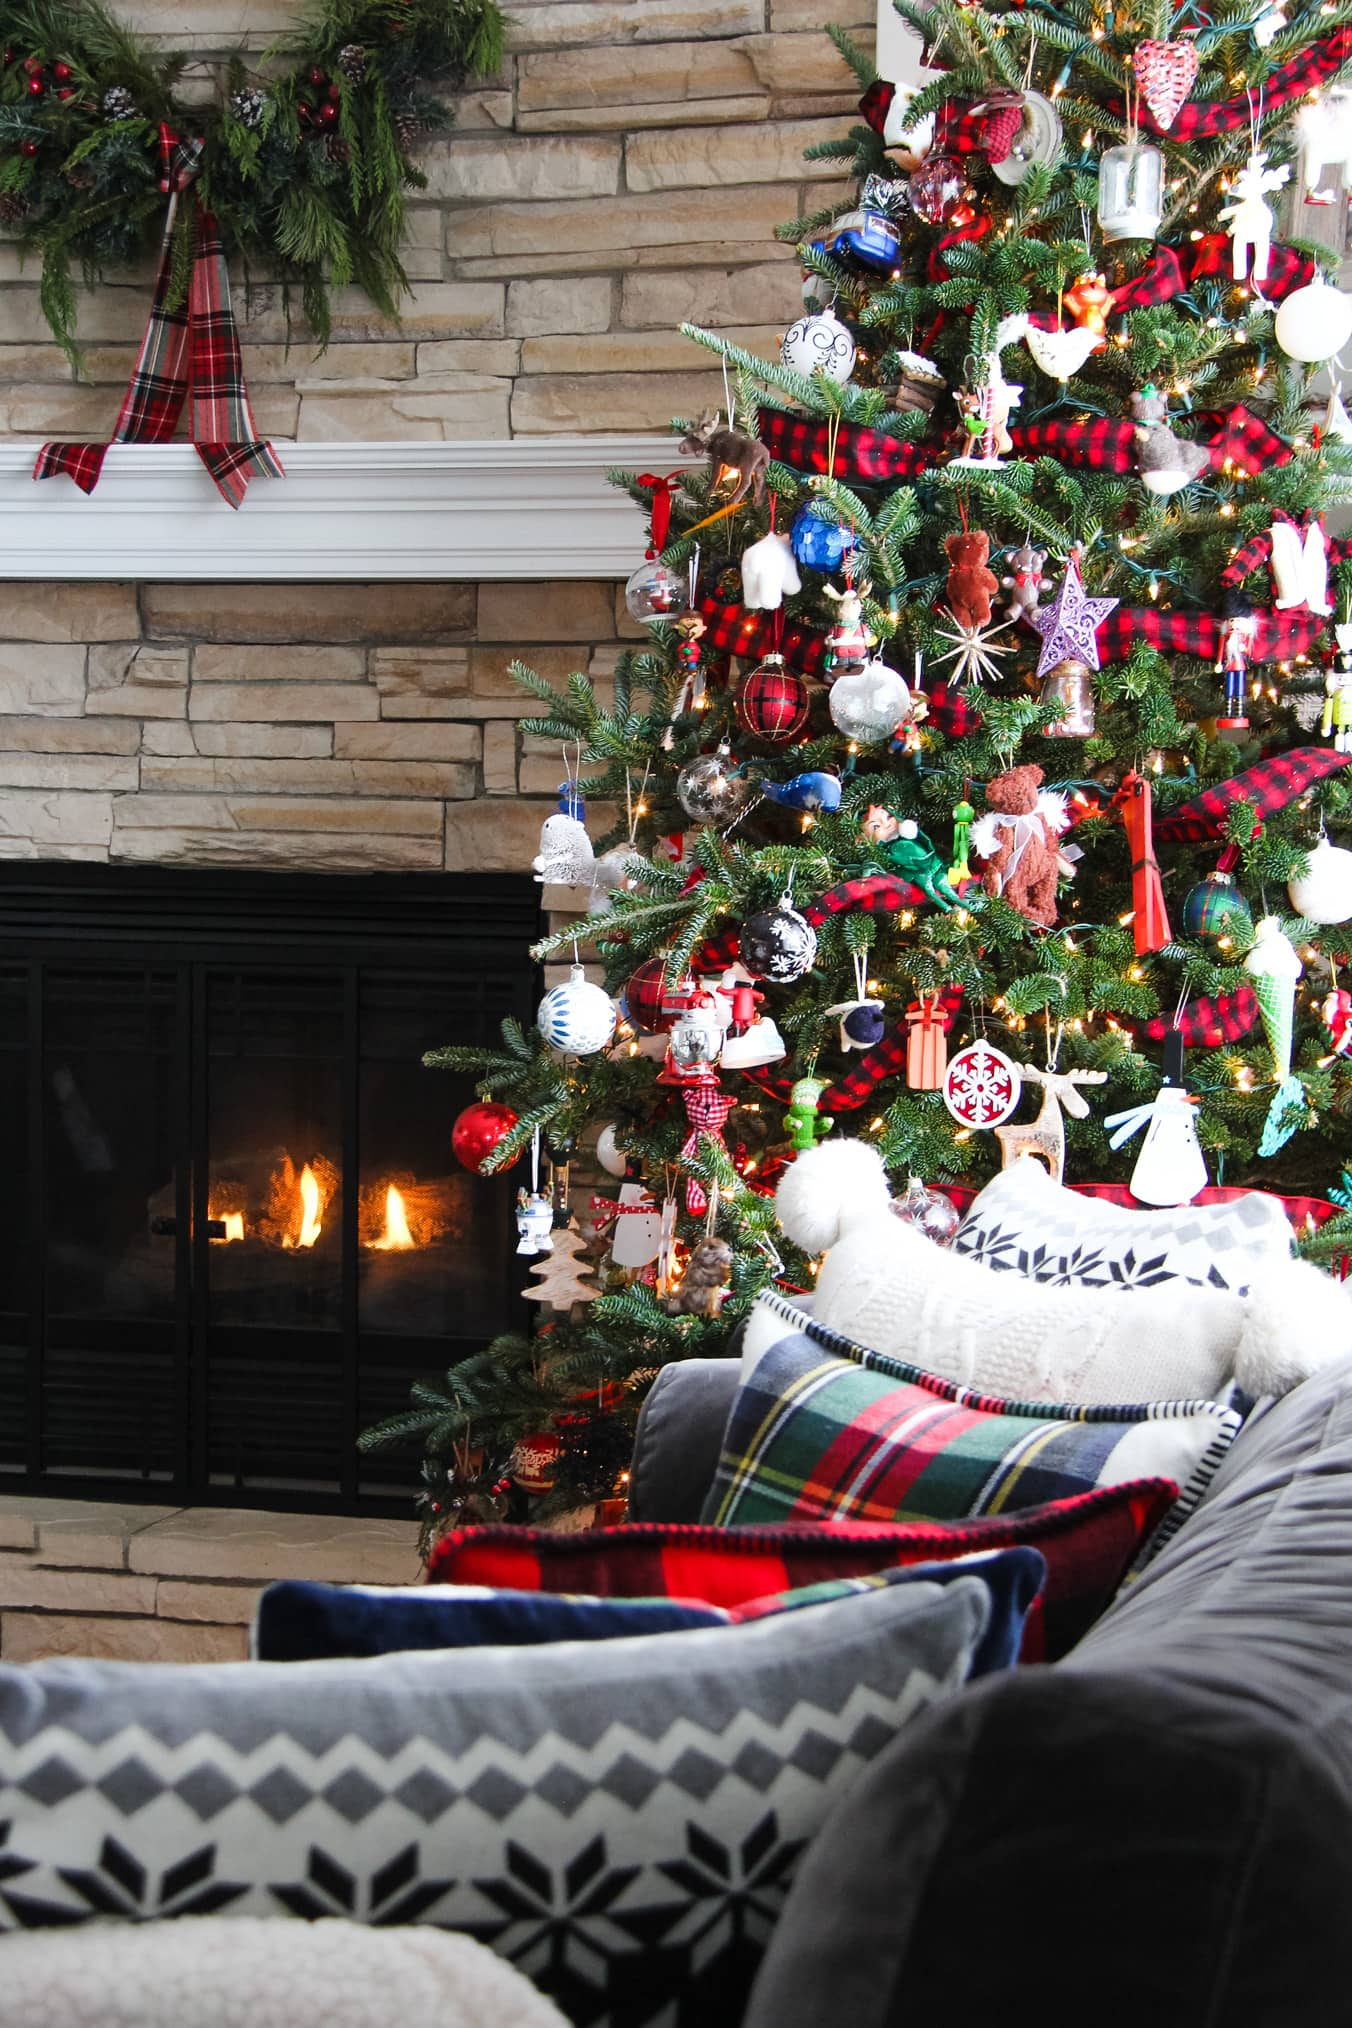 Pretty rustic and plaid decorated Christmas tree